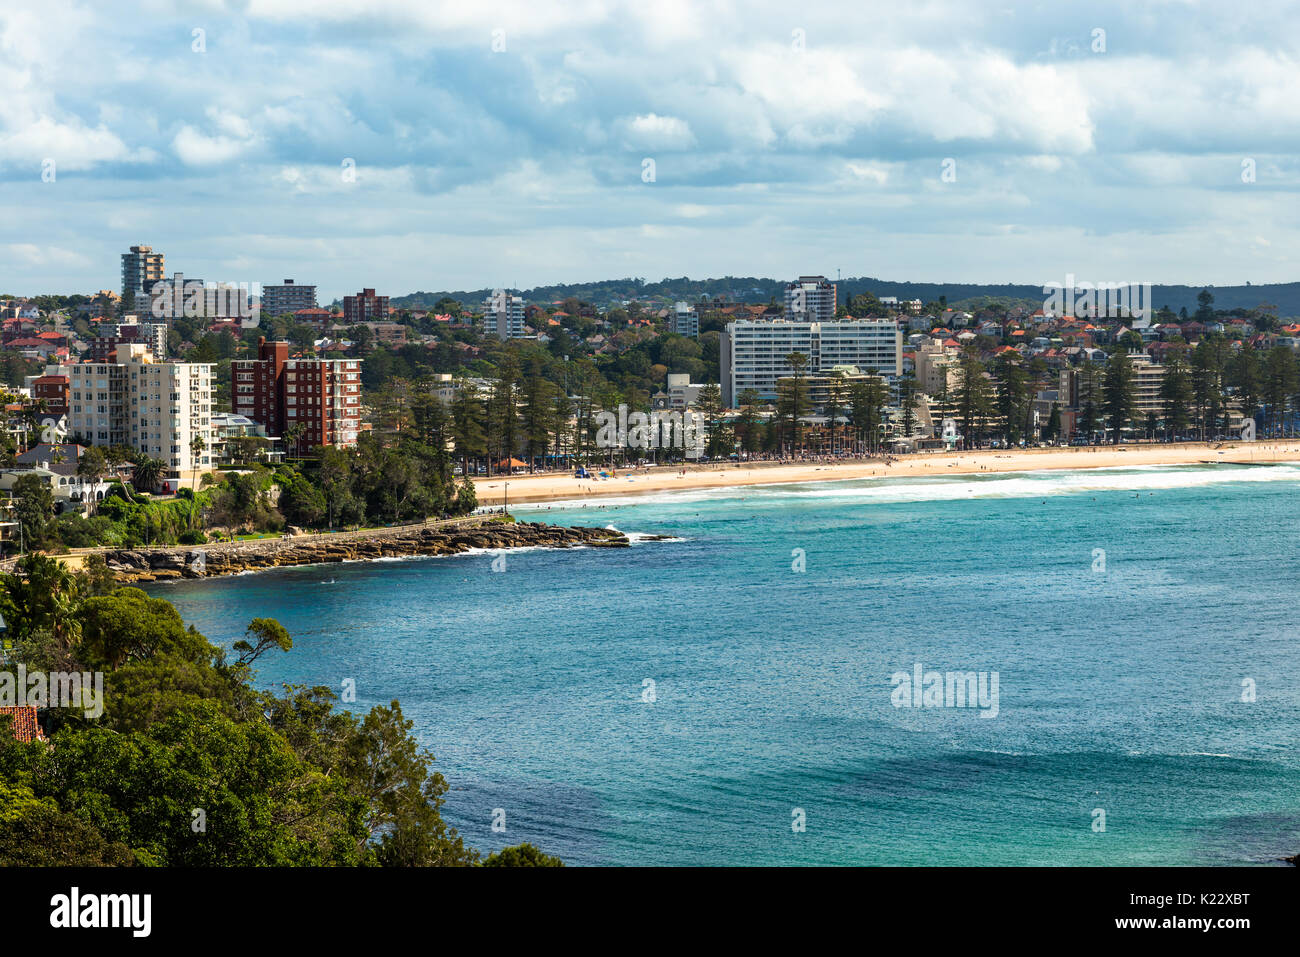 dating northern beaches sydney Explore convict ruins or glamp with amazing sydney harbour view,  sydney's secret islands home  a tranquil northern beaches retreat.